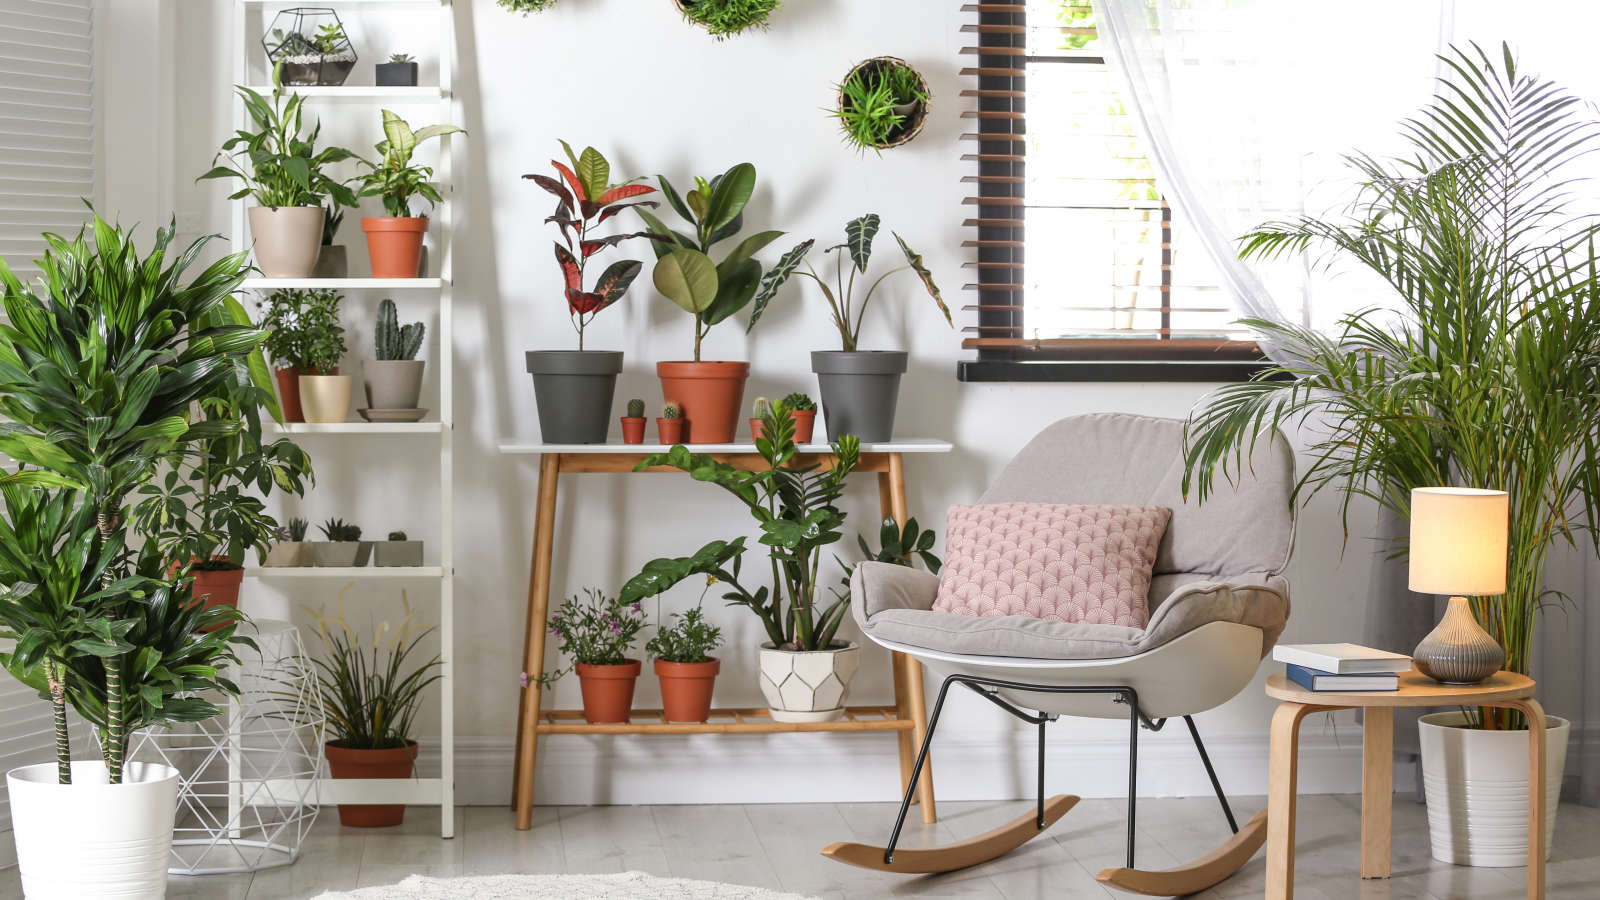 Get a Houseplant to Feel More In-Control of Your Life